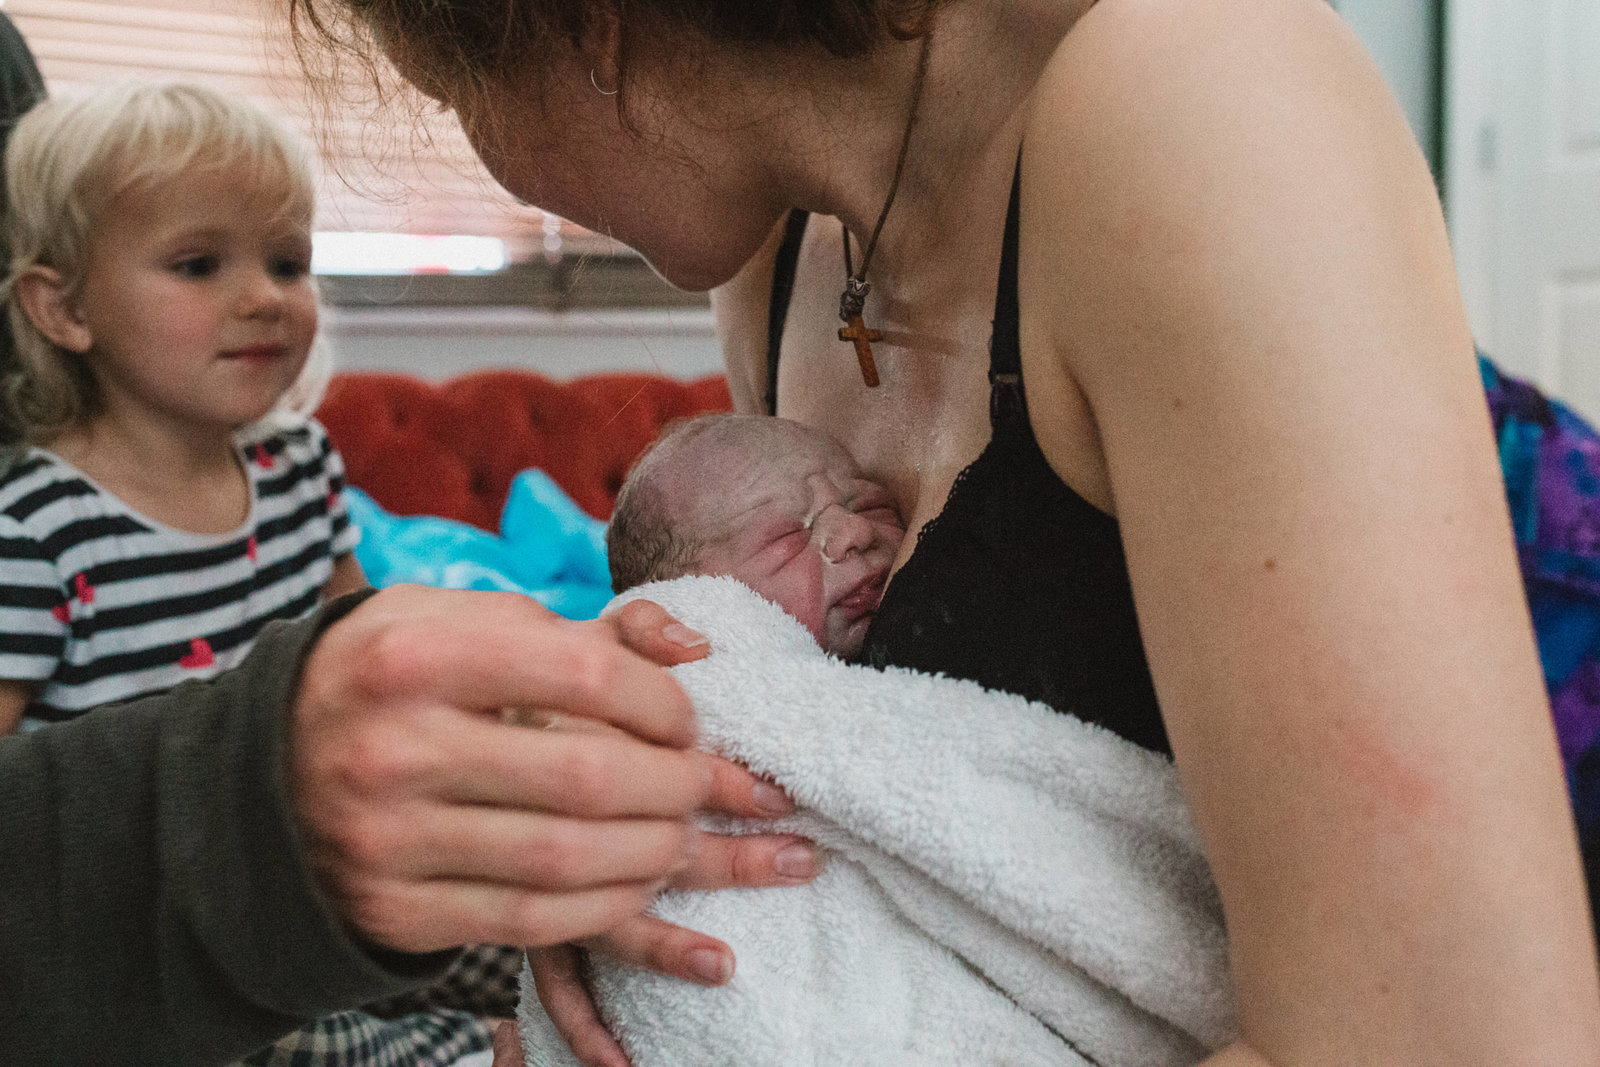 Documentary photograph of Ipswich mum holding newborn baby seconds after home birth